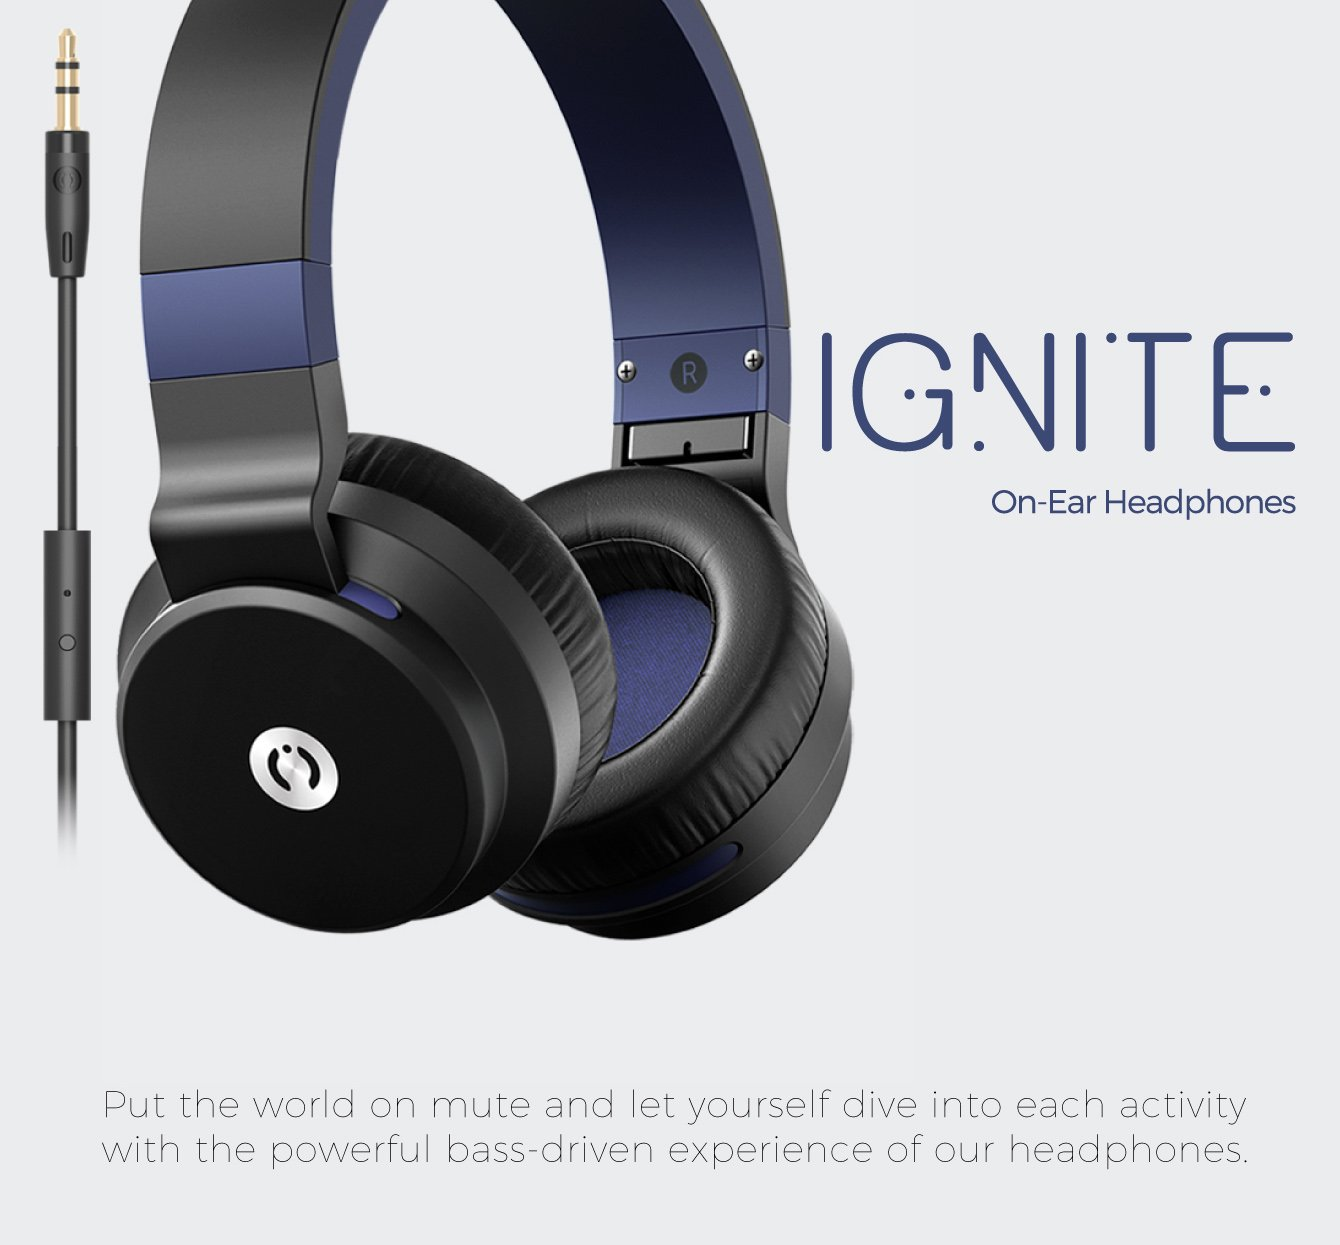 Muveacoustics Headphones Buy Speakers Ears And Protector Put The World On Mute Dive Into Powerful Experience Of Our Enjoy Limitless Motion While You Immerse In A Vibrant Sound